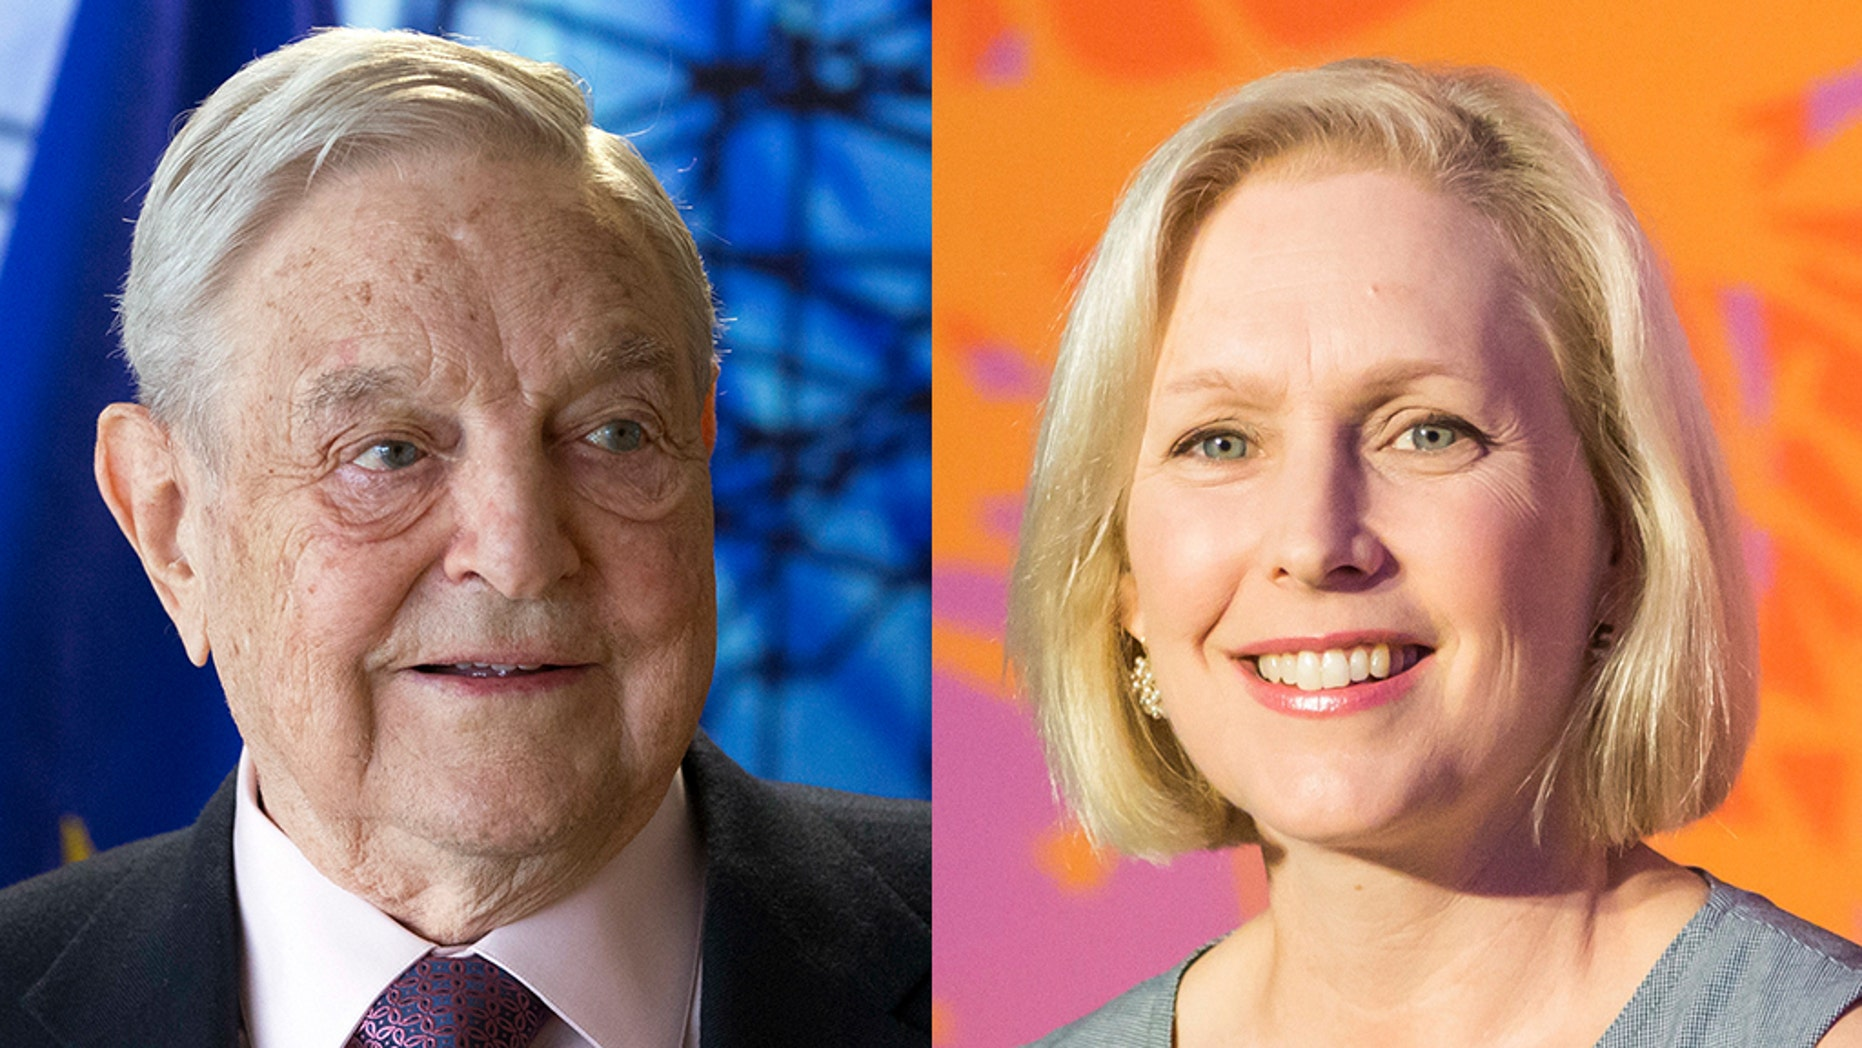 Sen. Kirsten Gillibrand, D-N.Y., responded after George Soros criticized her for leading the barrage of condemnation that forced fellow Democratic Sen. Al Franken to resign last year over groping allegations.